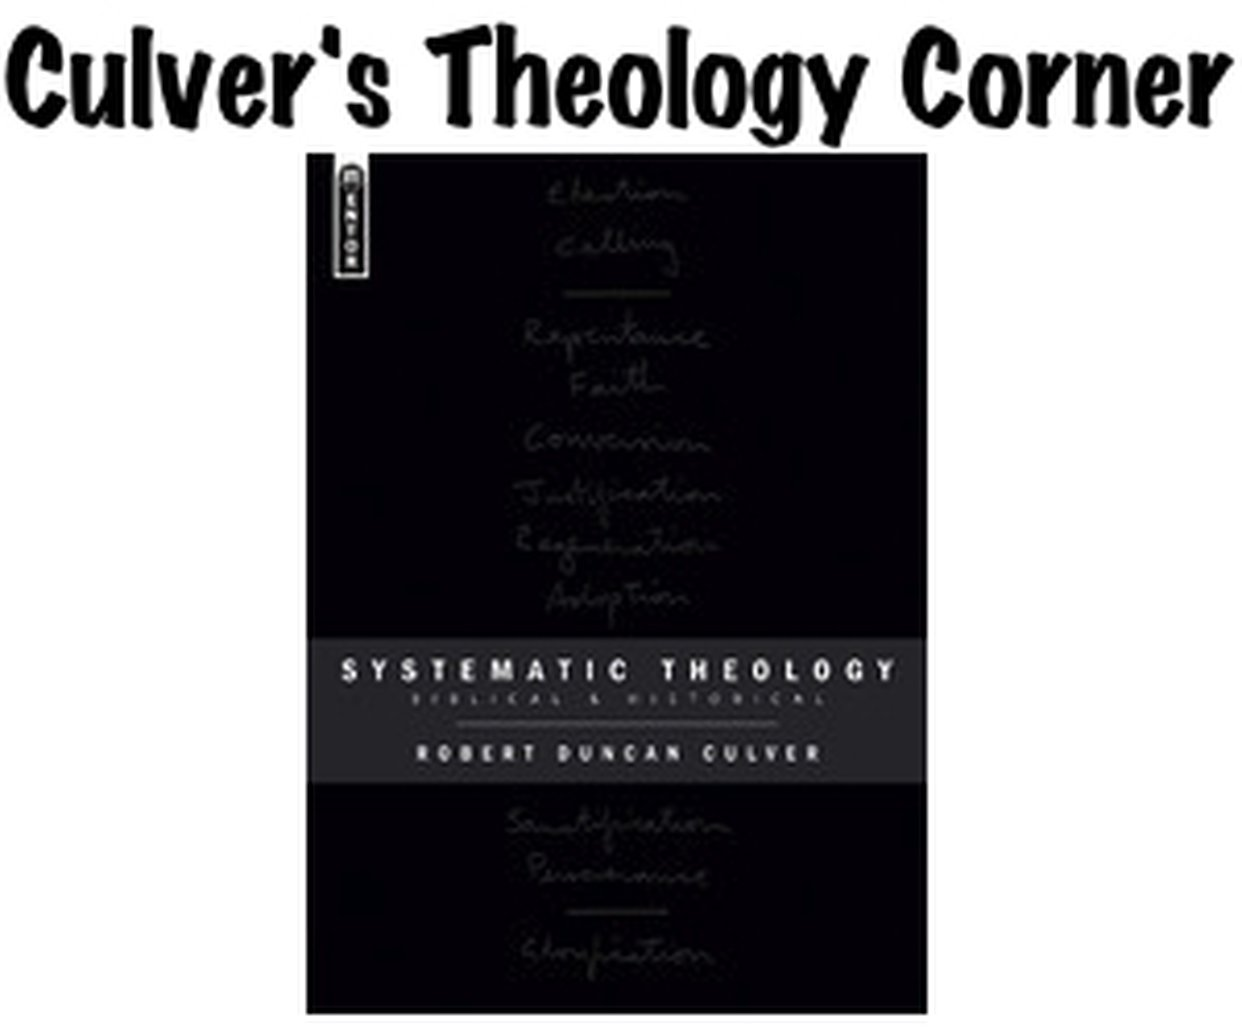 Culver's Theology Corner - The Origin and Unity of Mankind by Creation - Part 1